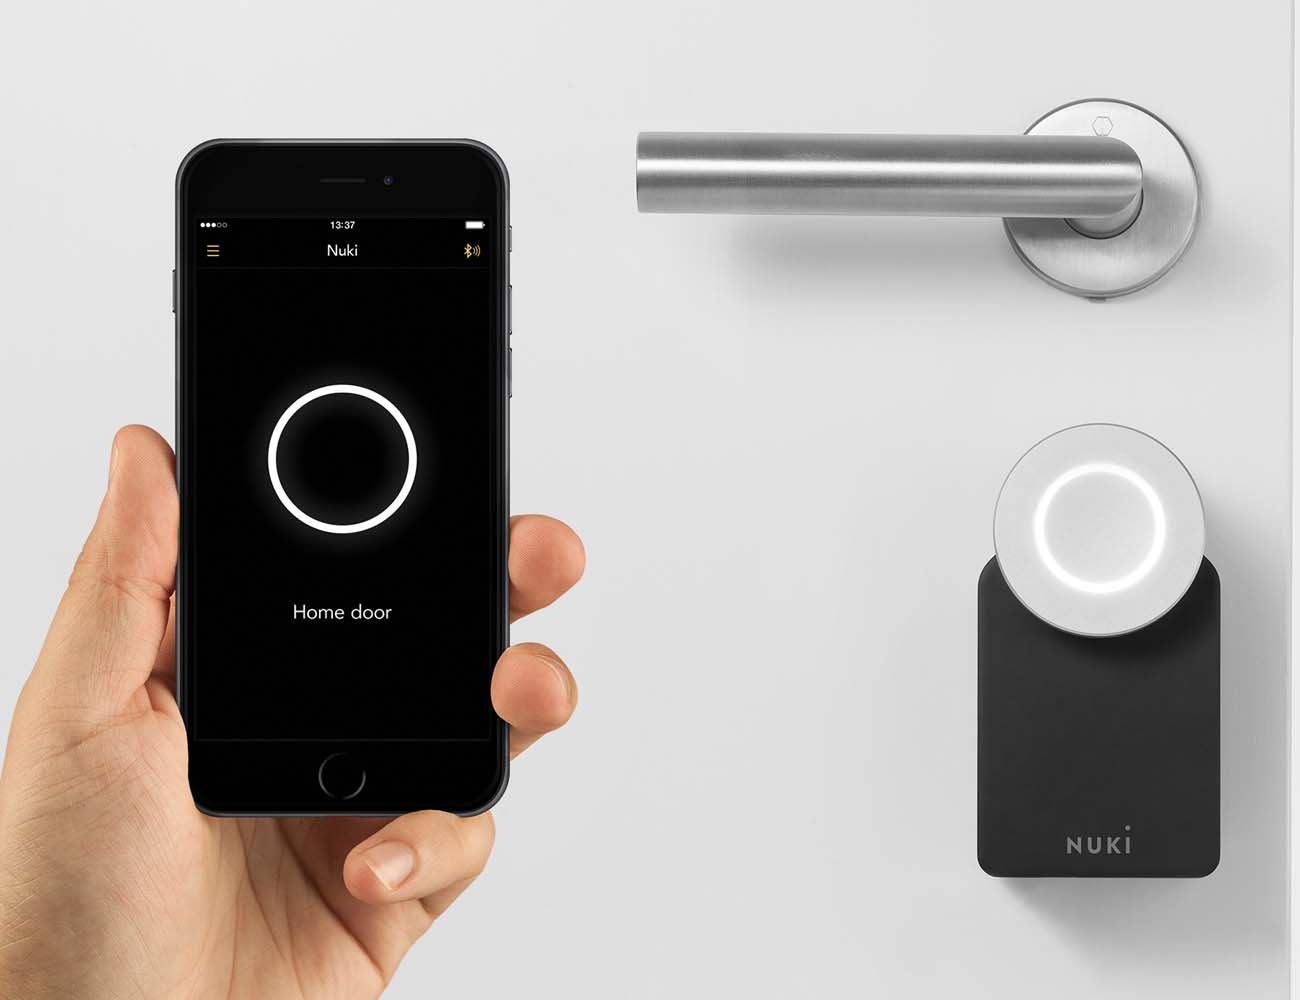 Noki: The Smart Doorlock For Europe